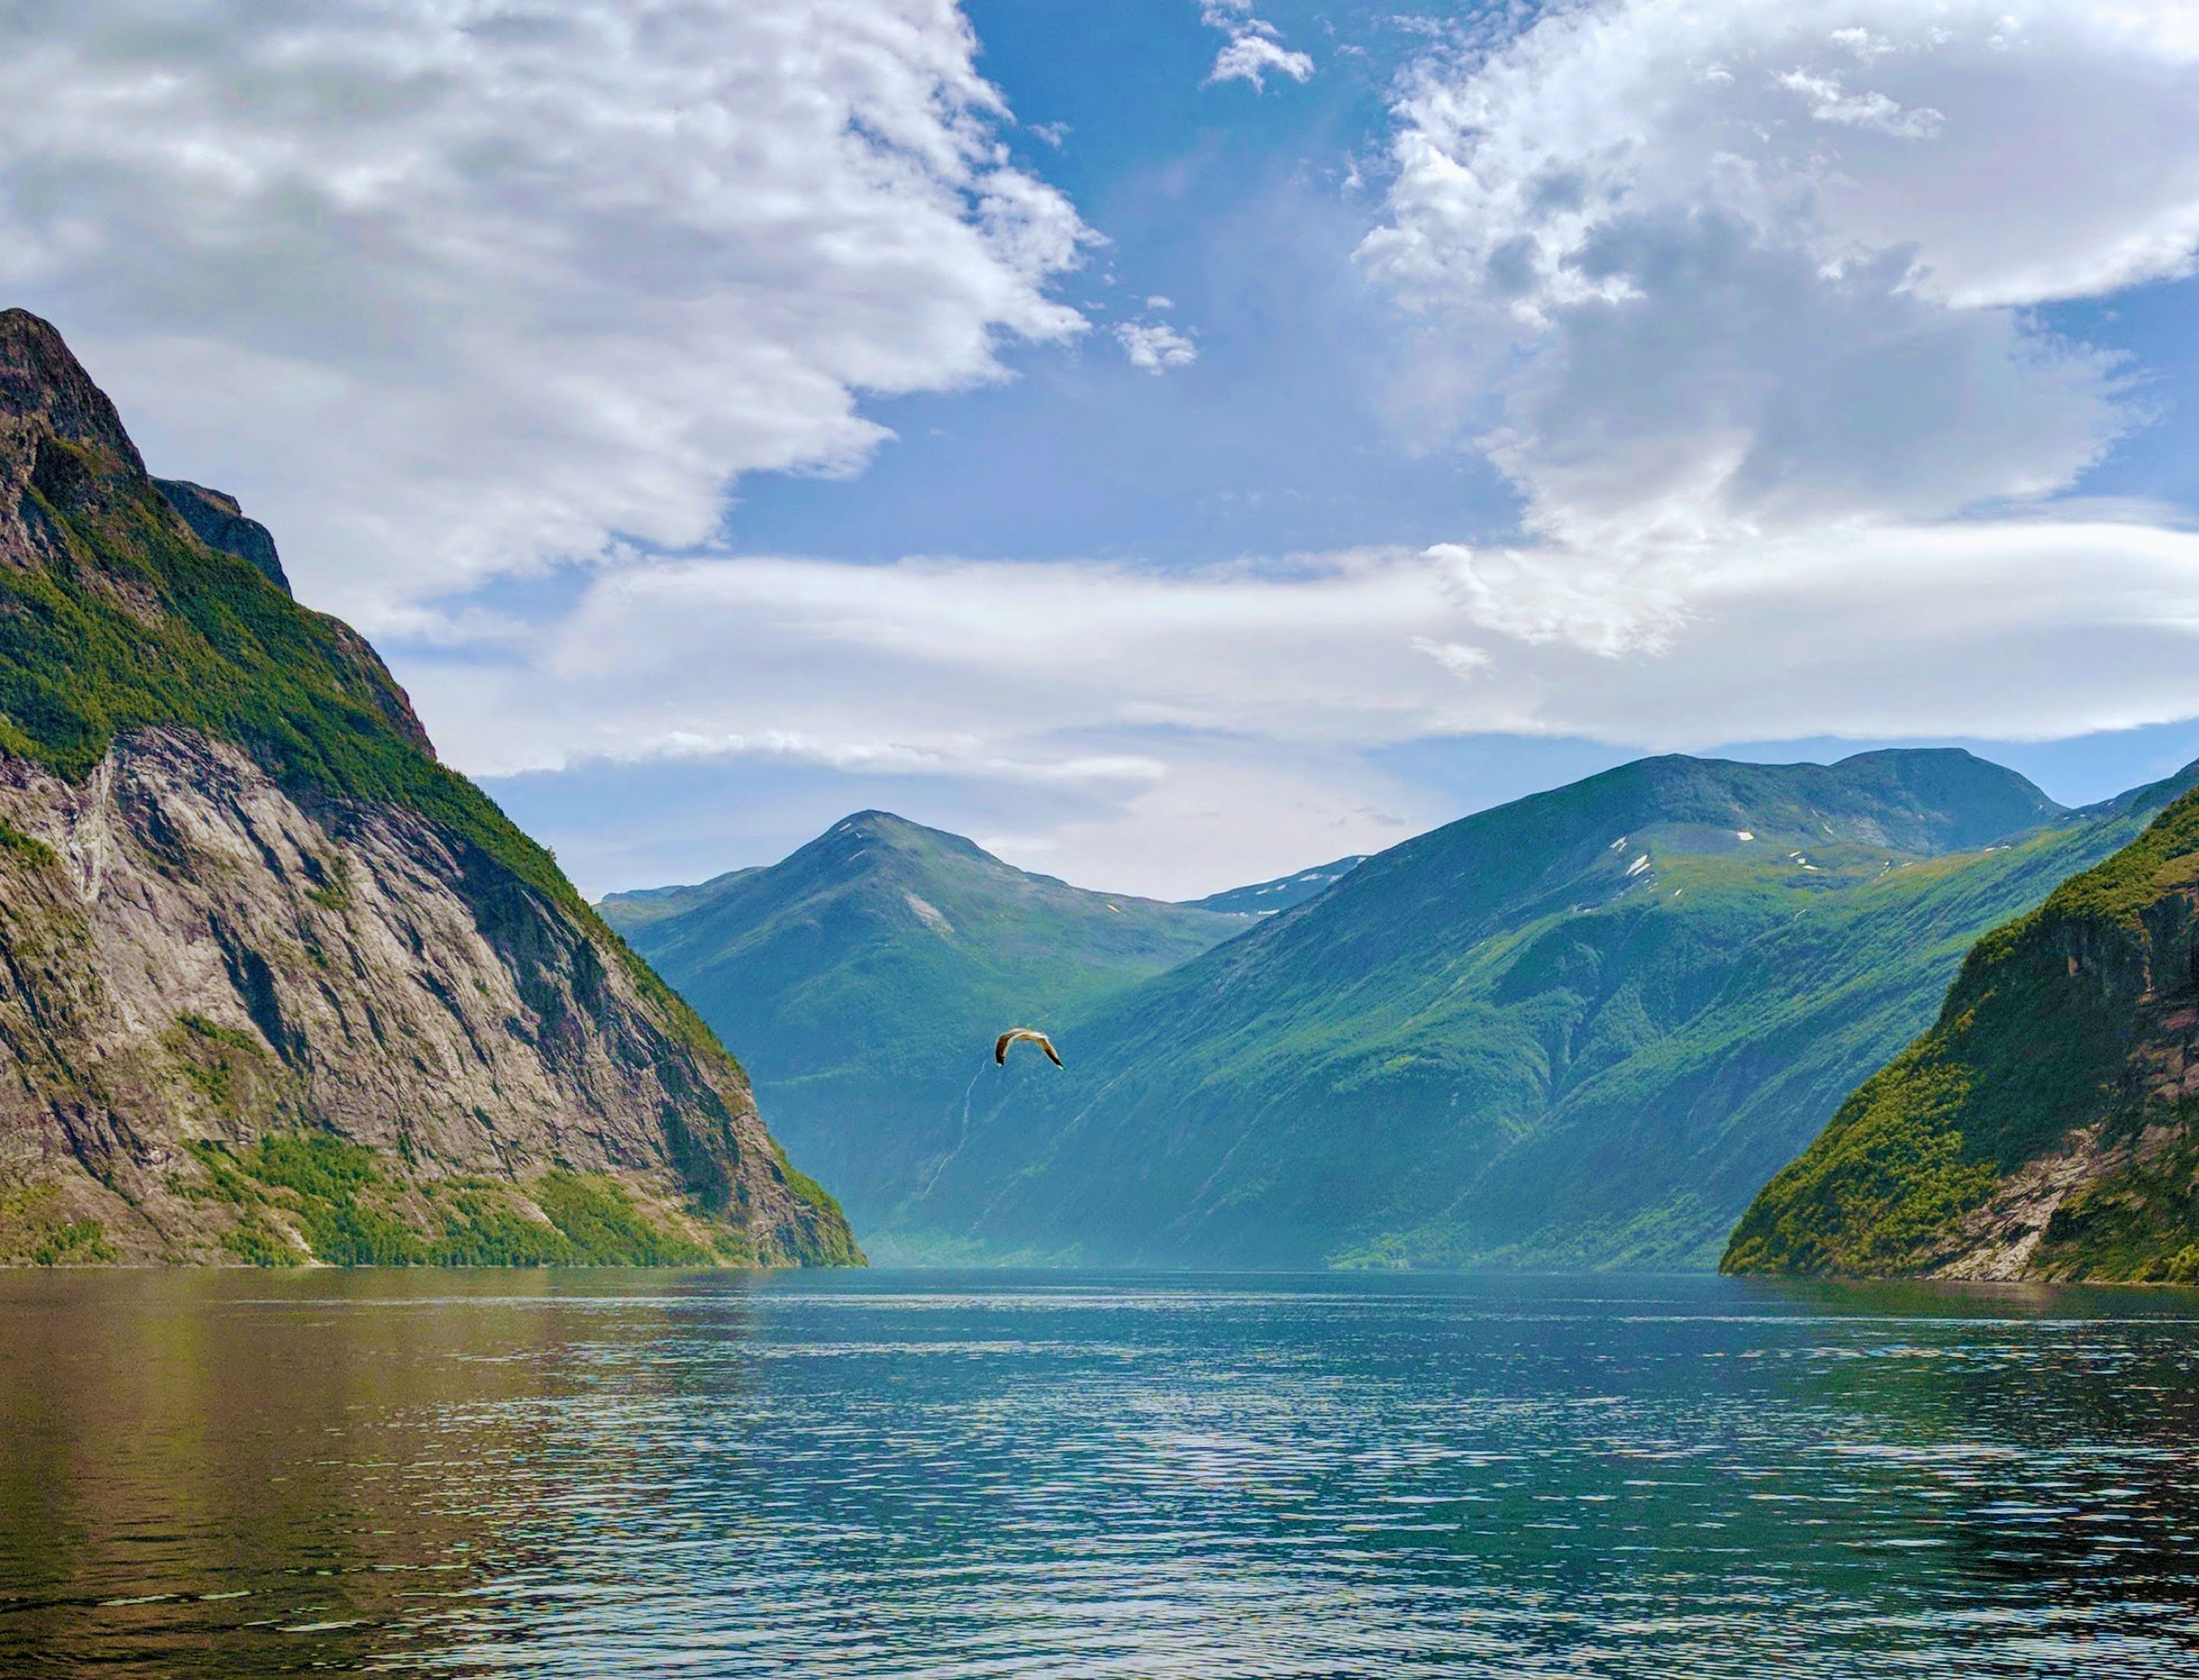 The majestic Geirangerfjord surroundings for BREEN hotel, Norway.